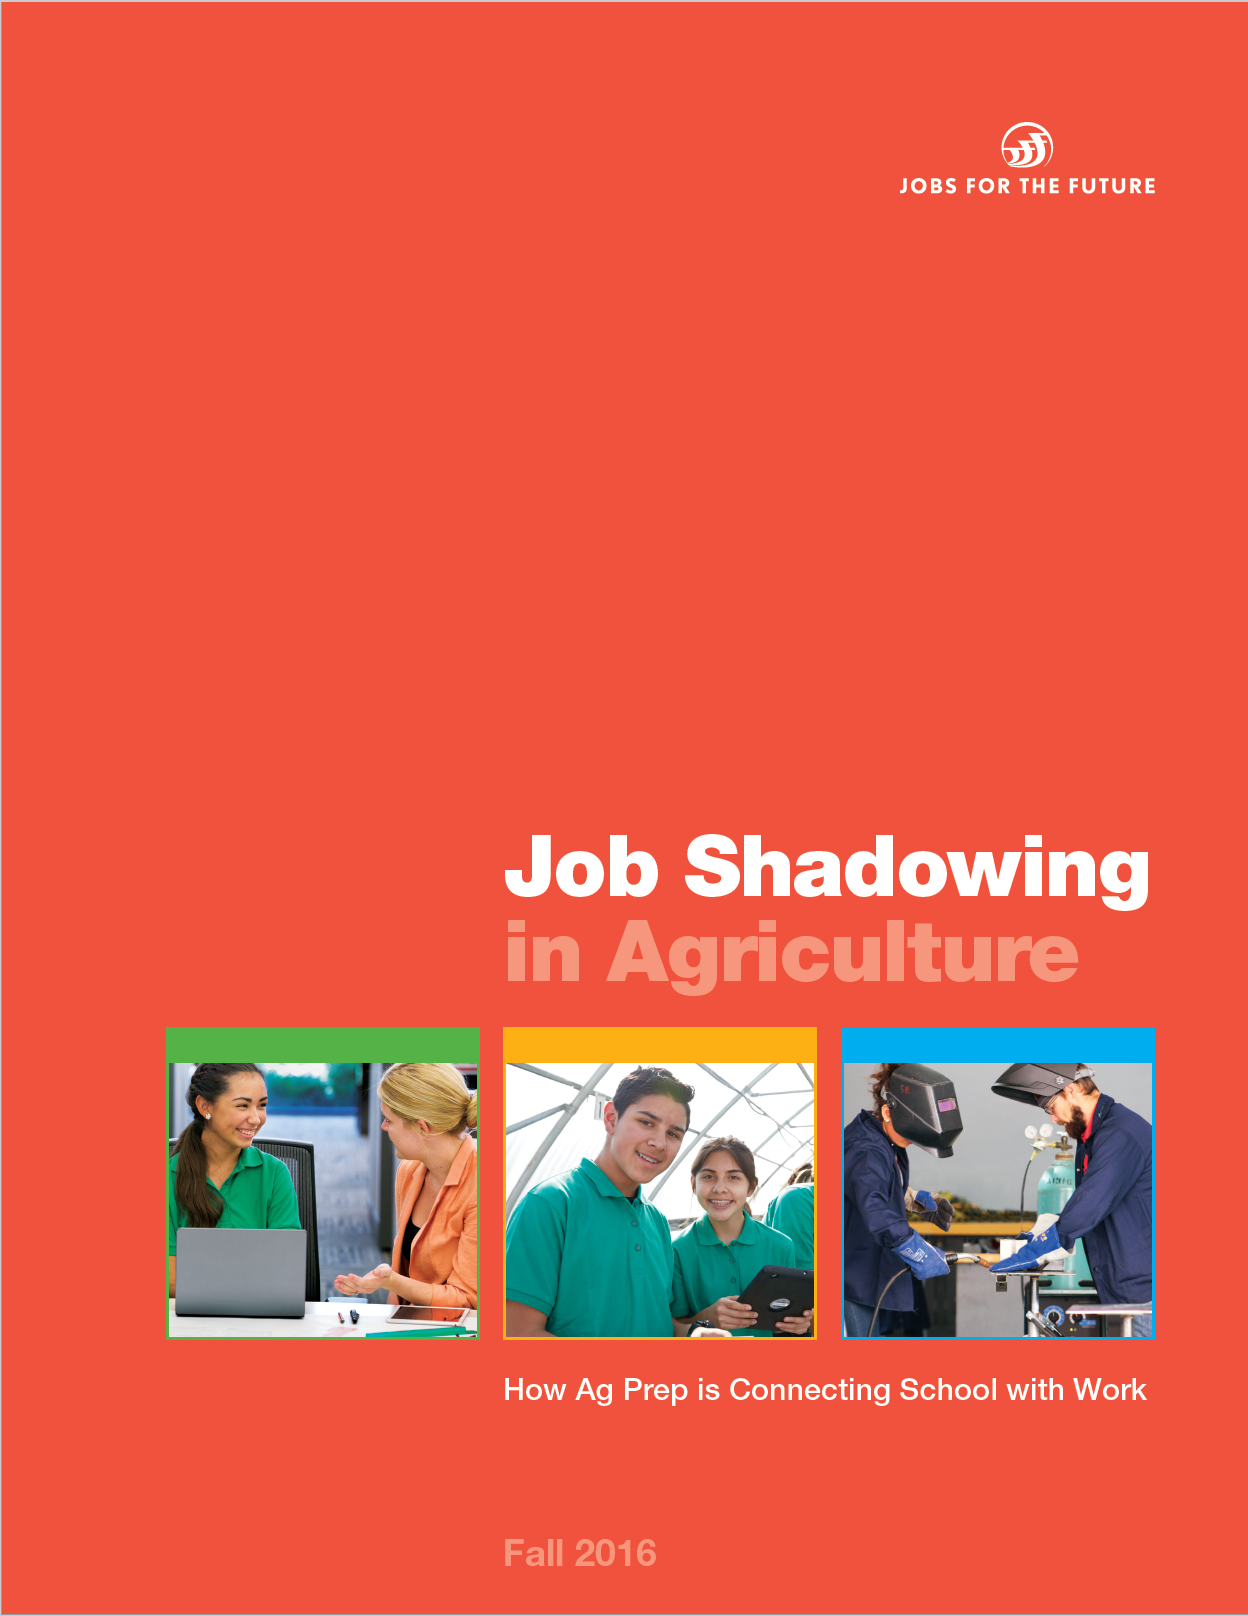 Job Shadowing in Agriculture